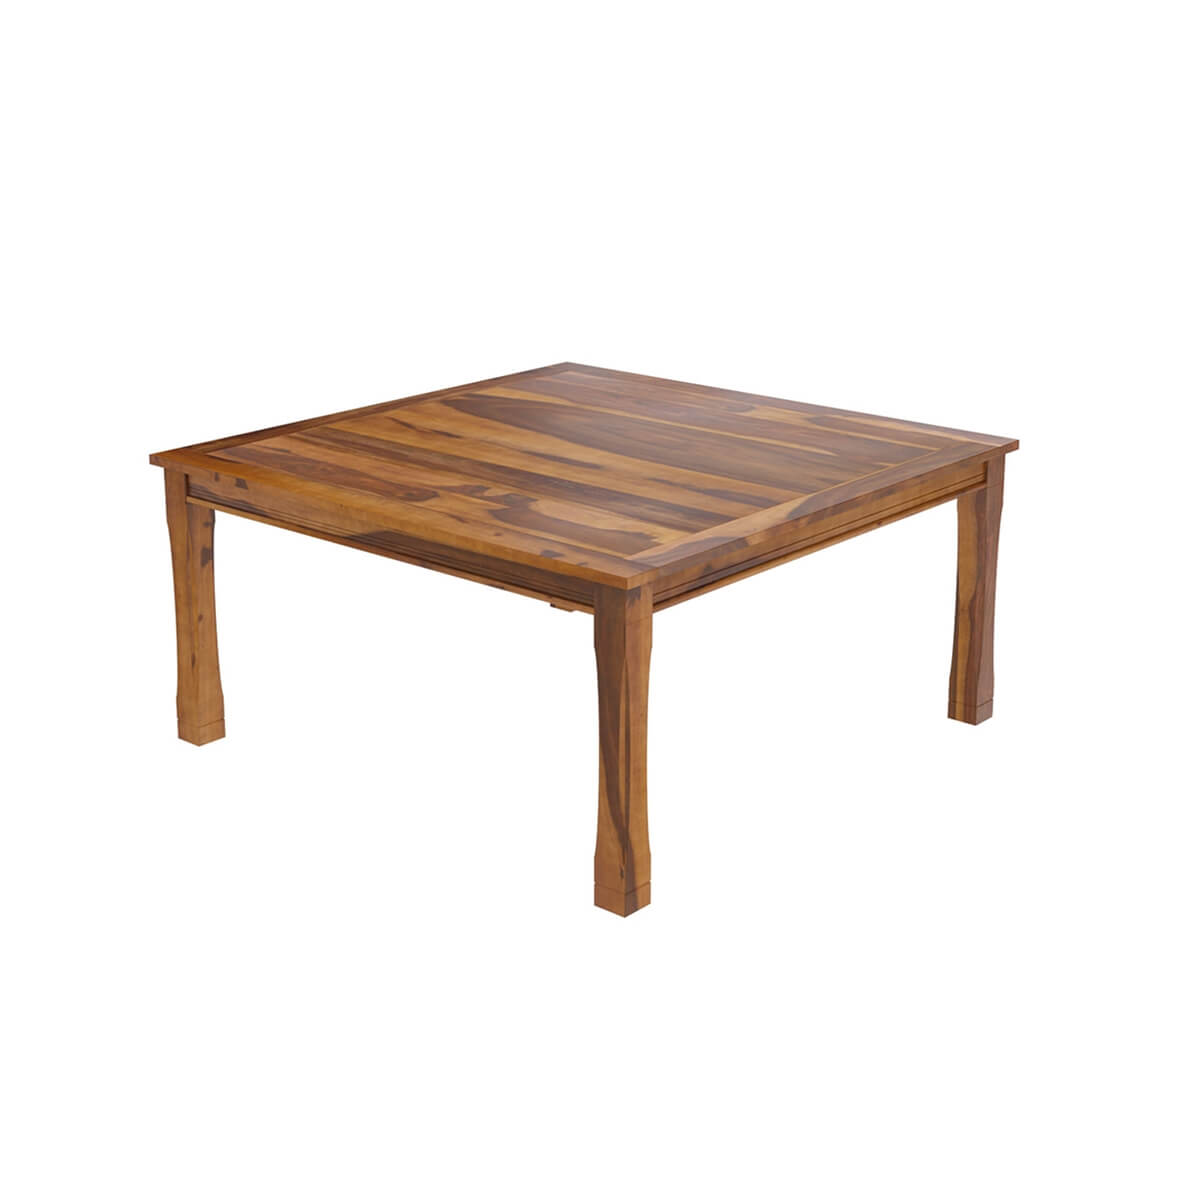 Dallas ranch transitional square wood dining room table for Dinner table wood